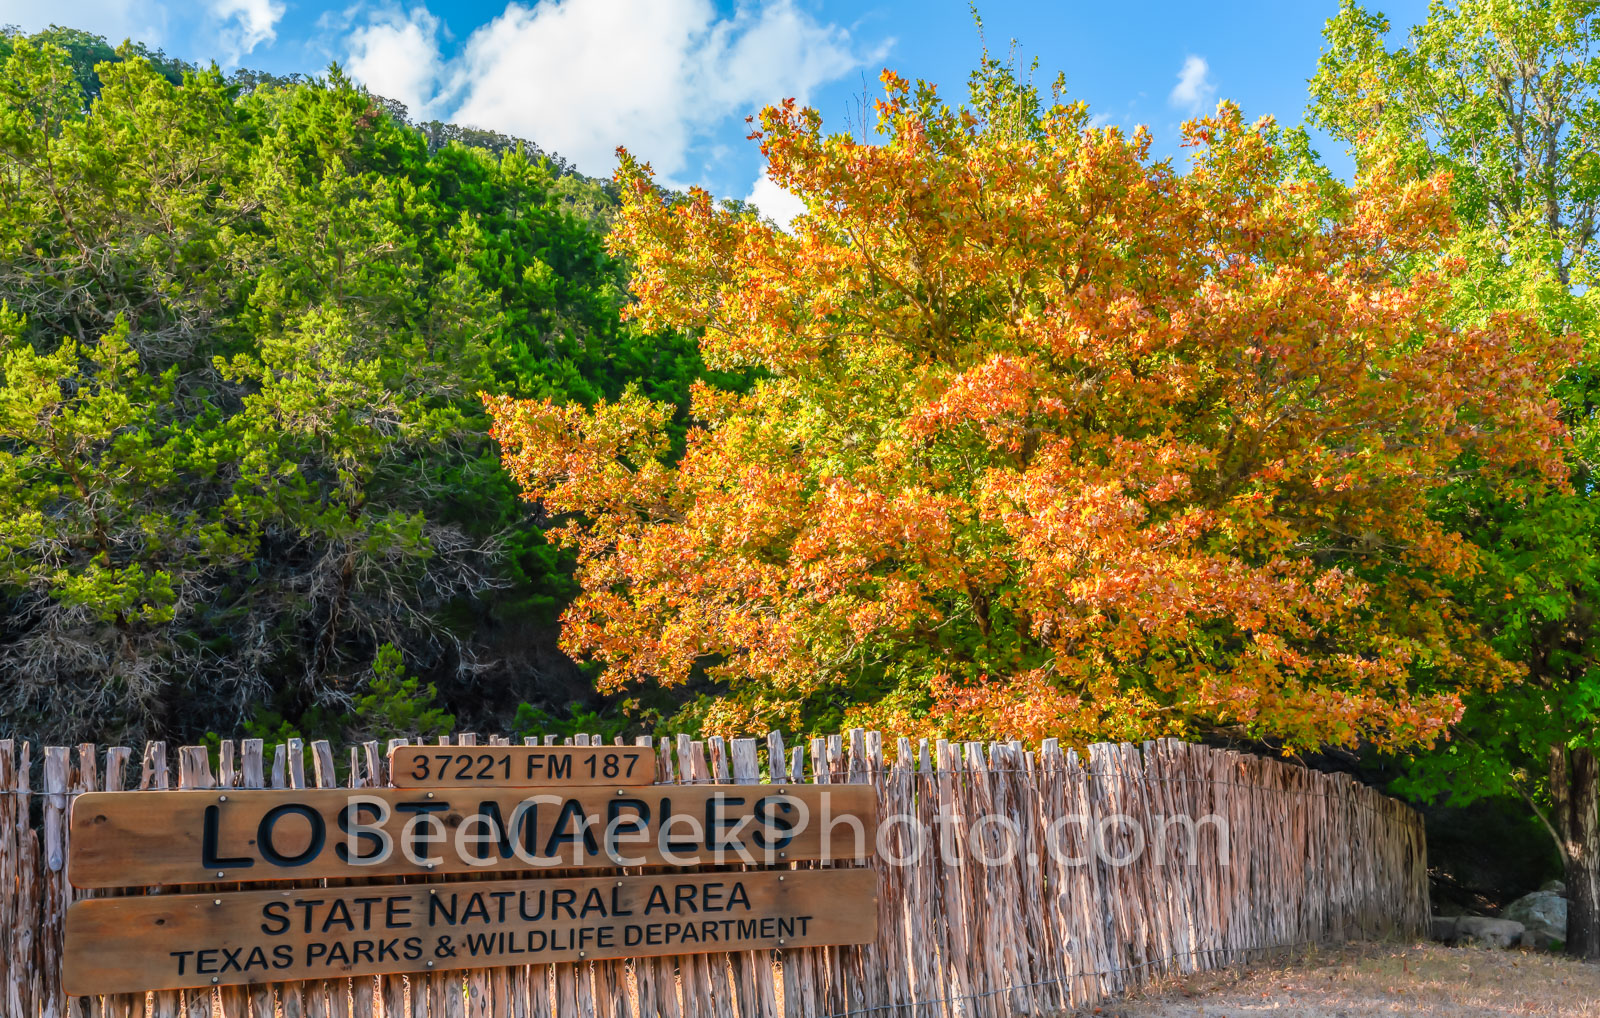 Lost Maples Park, Lost Maples, nature area, nature, natural, State Natural Area, Texas parks and wildlife department, autumn, fall, fall scenery, fall colors, texas hill country, hill country,, photo